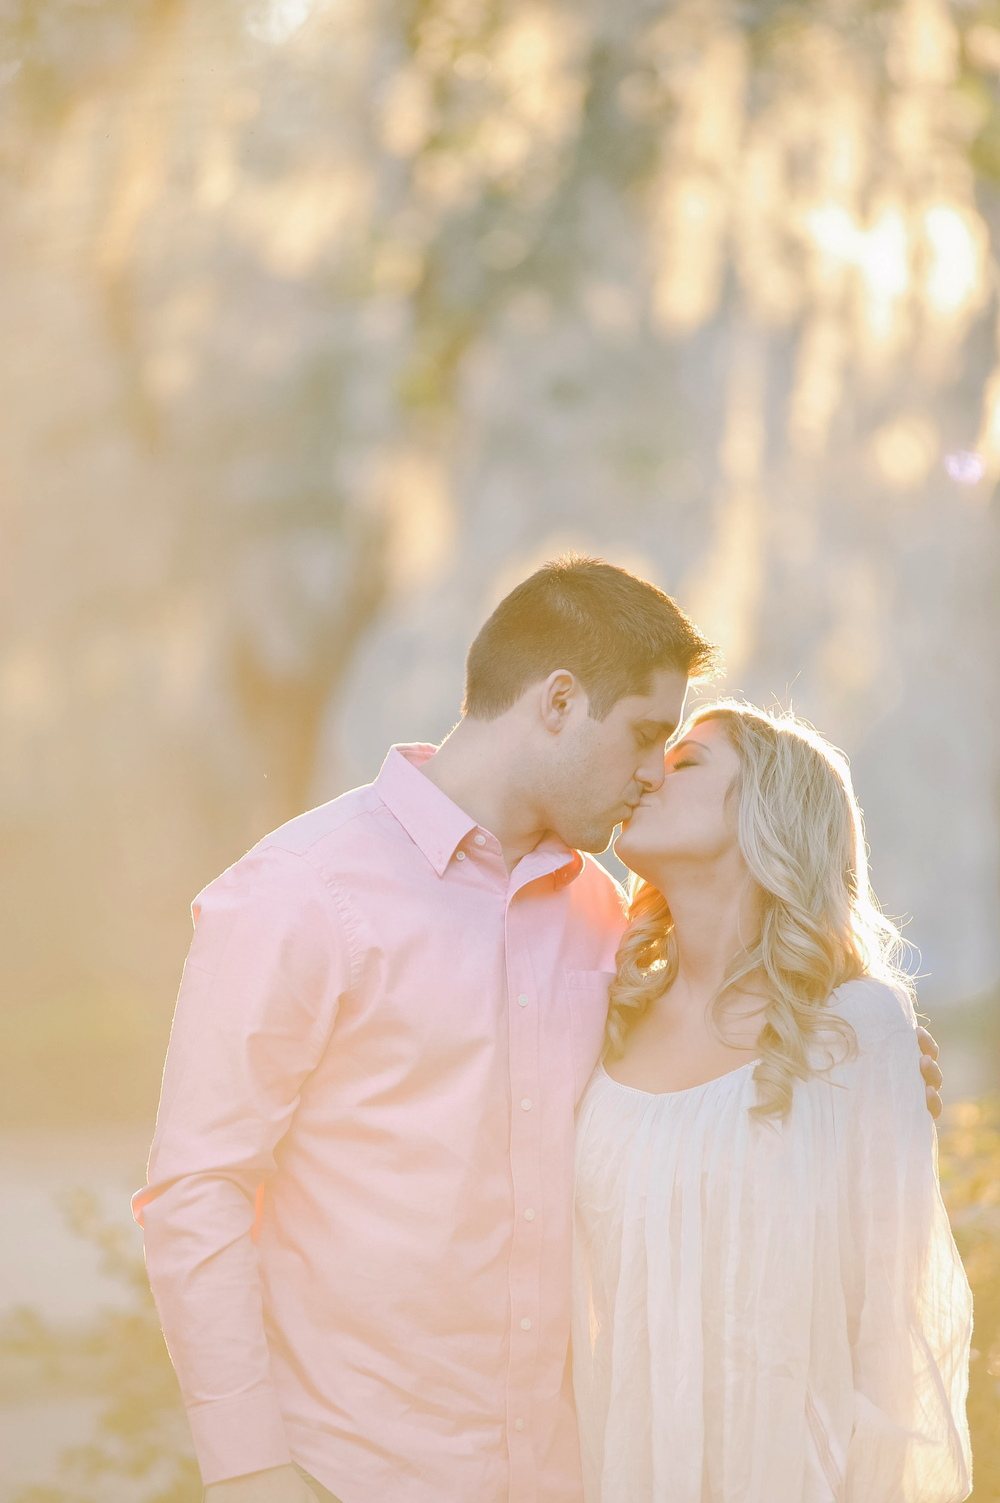 Charleston engagement photographer captures couple under Spanish moss in Charleston, SC at sunset.